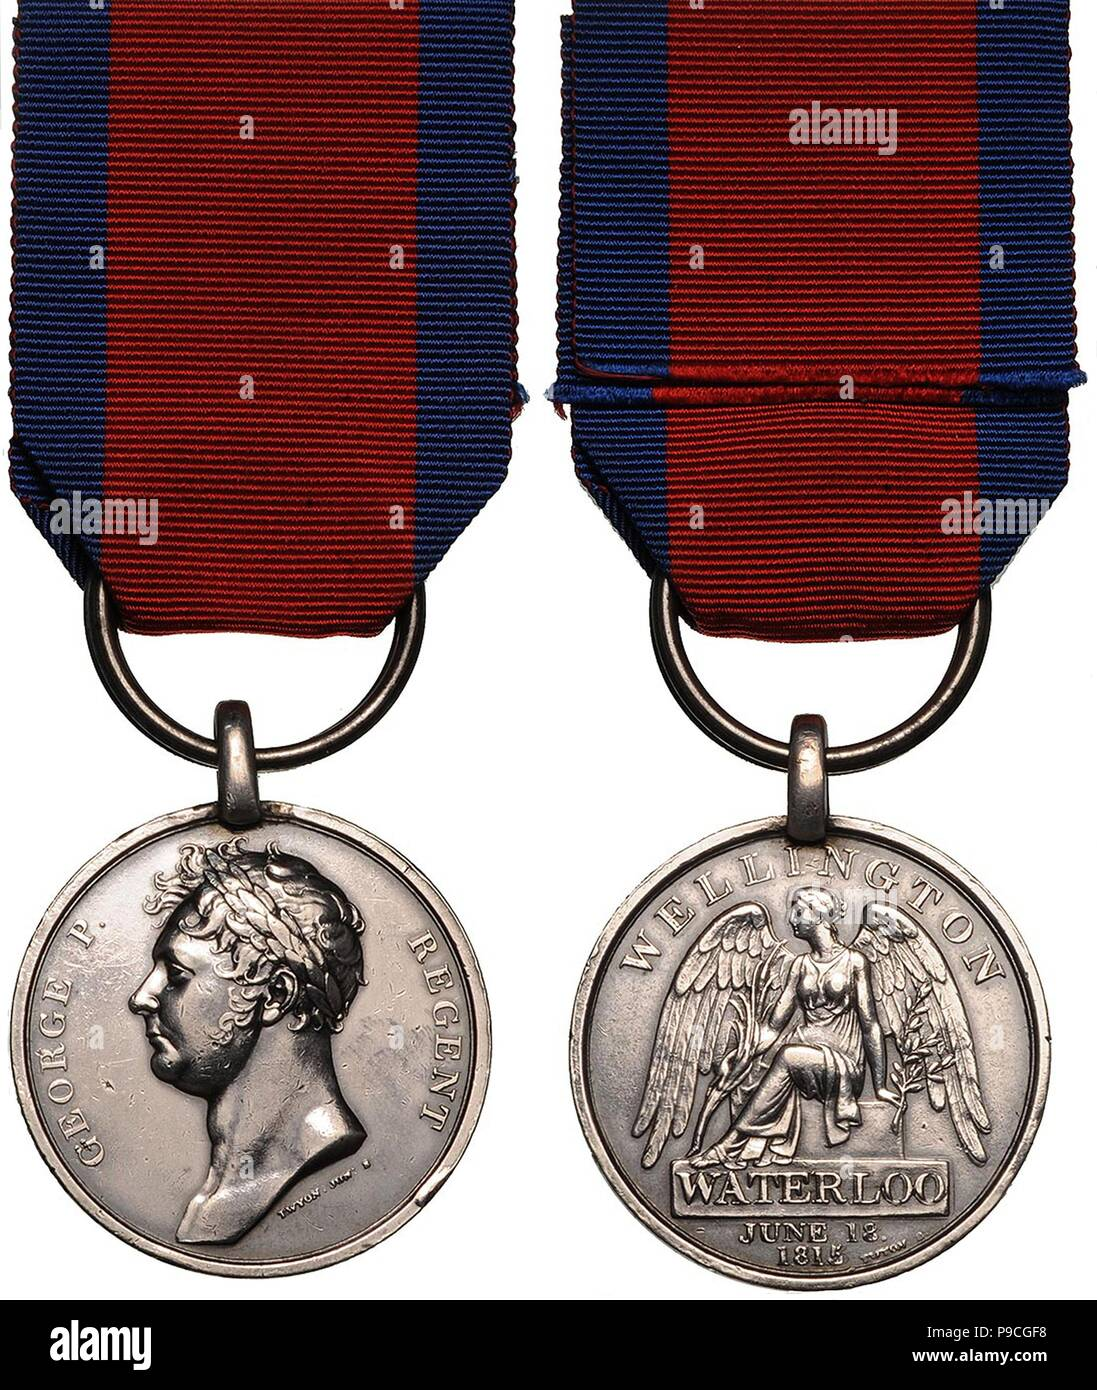 The Waterloo Medal. Museum: PRIVATE COLLECTION. - Stock Image